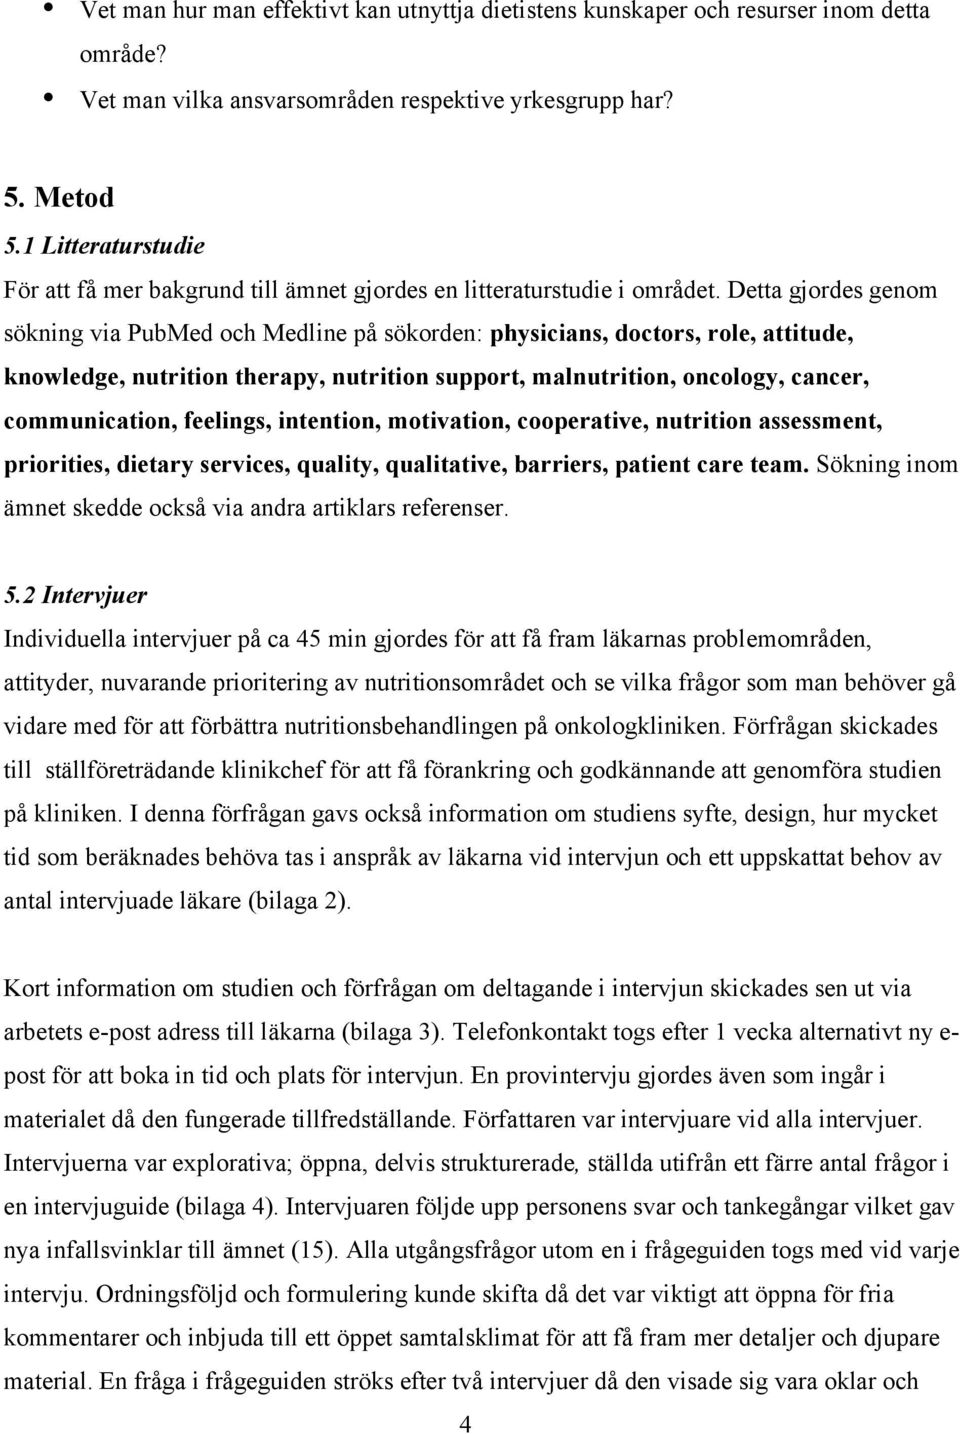 Detta gjordes genom sökning via PubMed och Medline på sökorden: physicians, doctors, role, attitude, knowledge, nutrition therapy, nutrition support, malnutrition, oncology, cancer, communication,